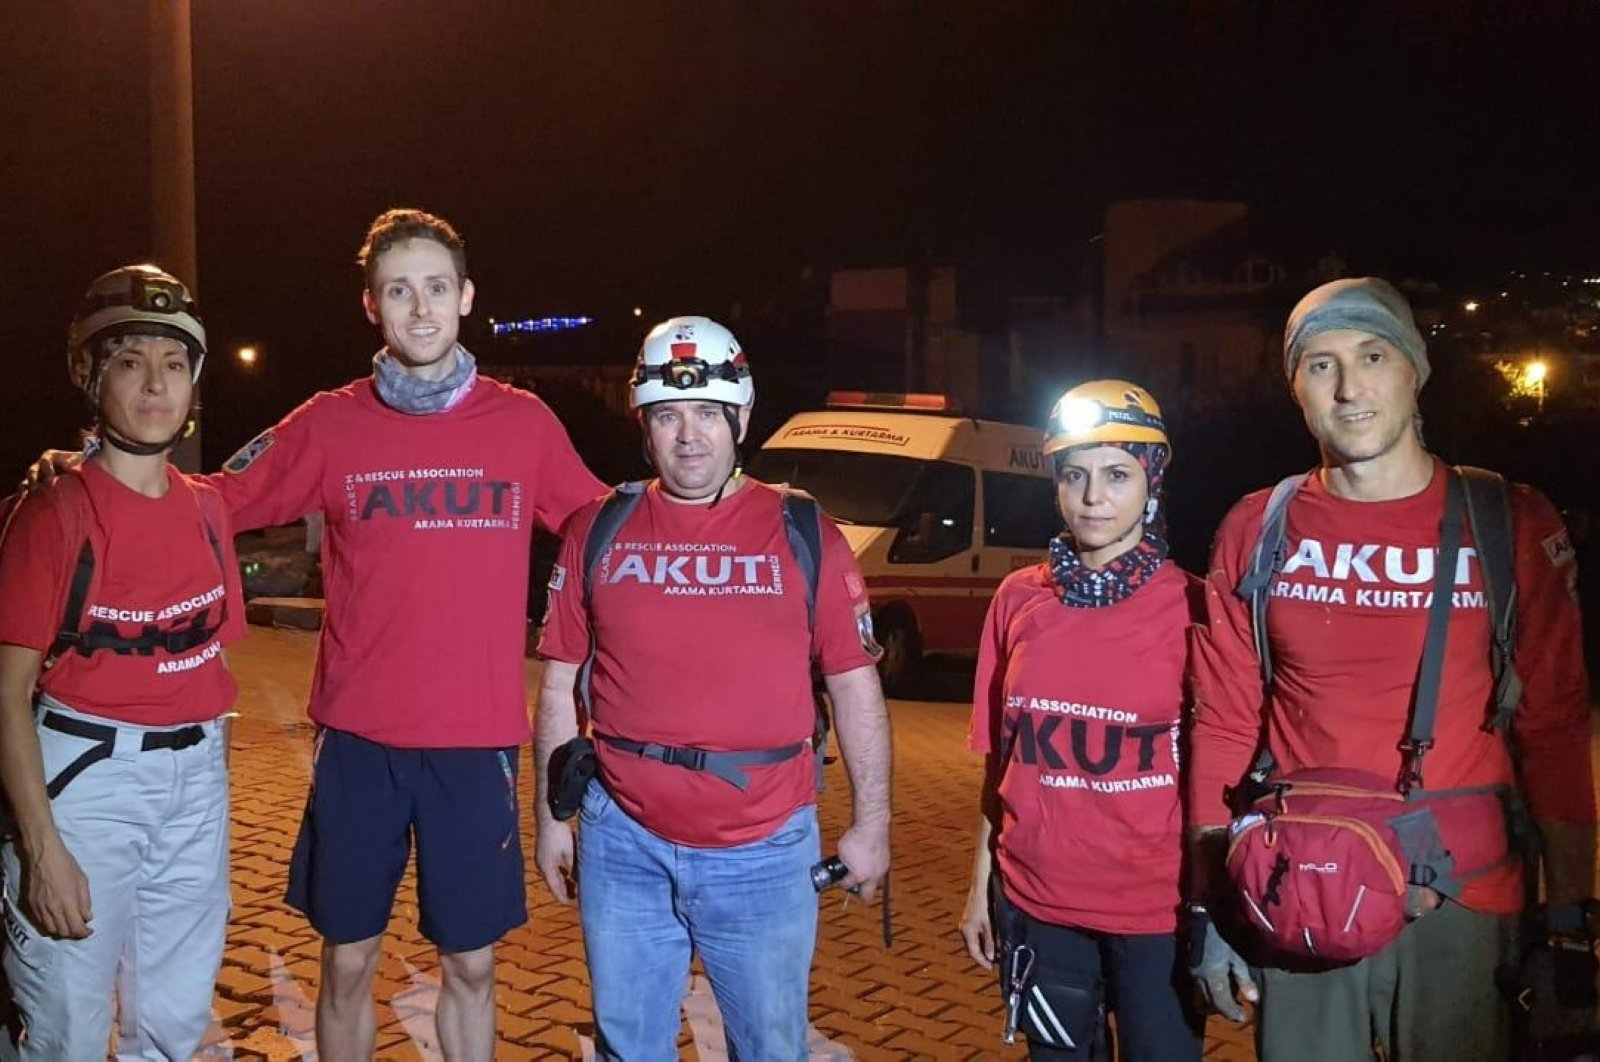 Madison Jack Roland (L) poses with the Search and Rescue Association (AKUT) team in Muğla, Turkey, Oct. 15, 2020. (AA Photo)